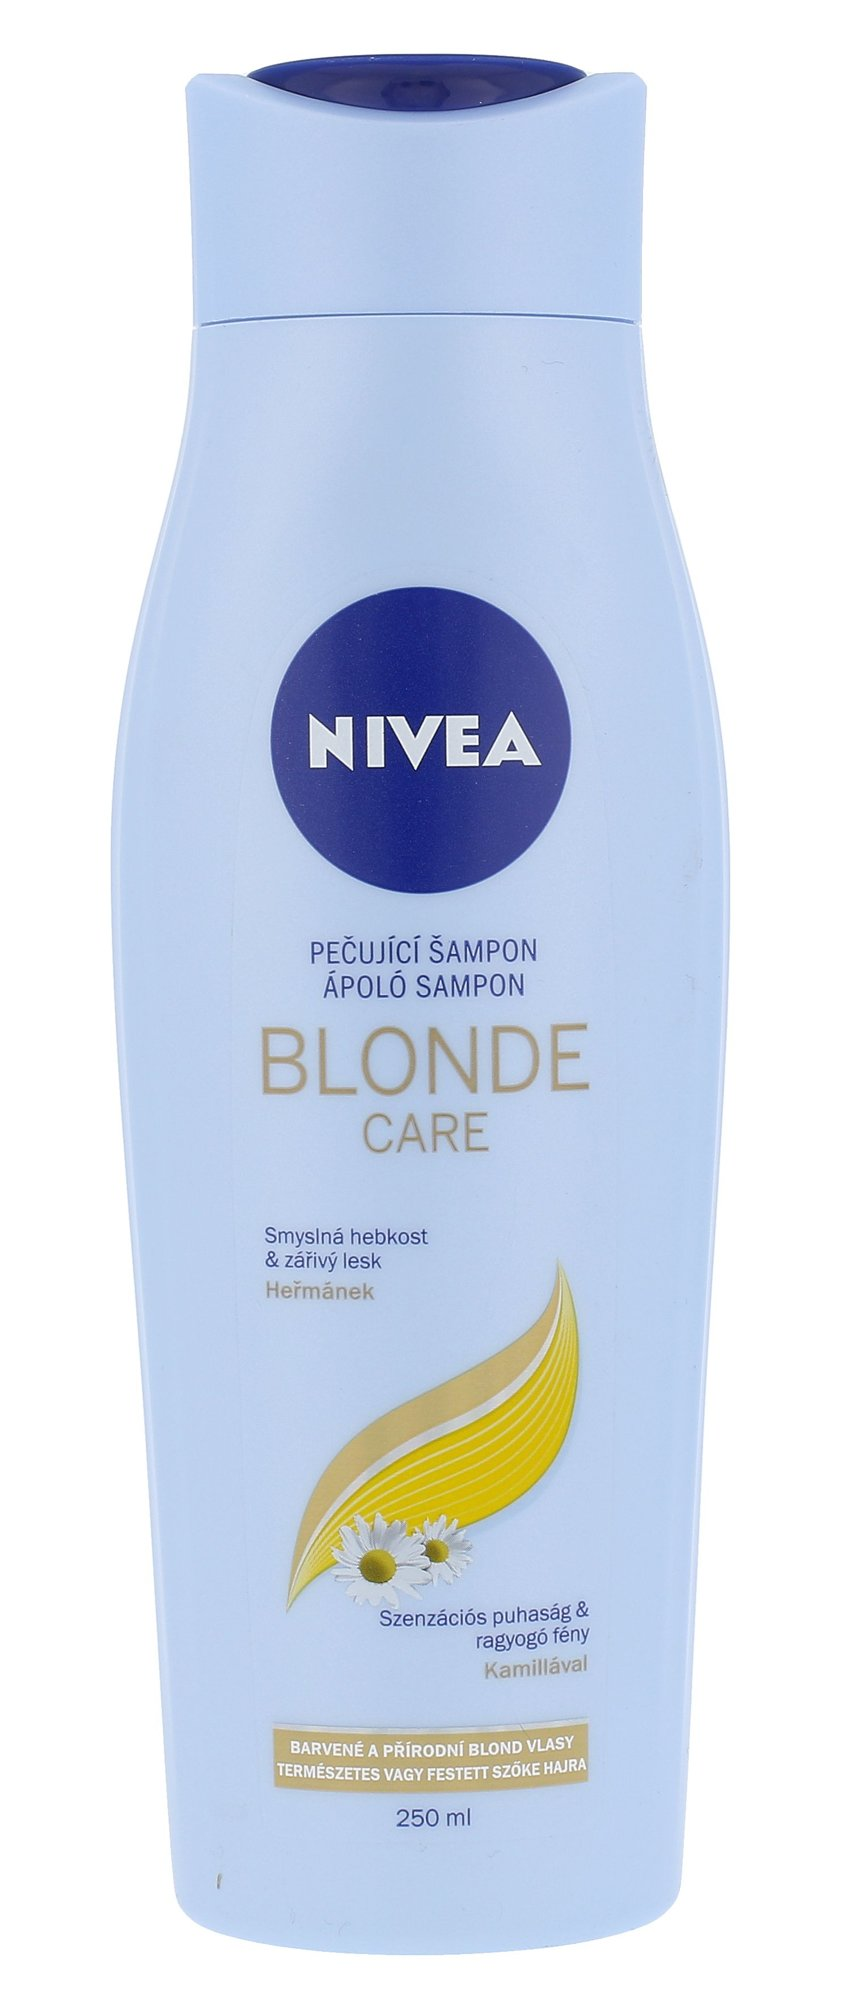 Nivea Blonde Care Cosmetic 250ml